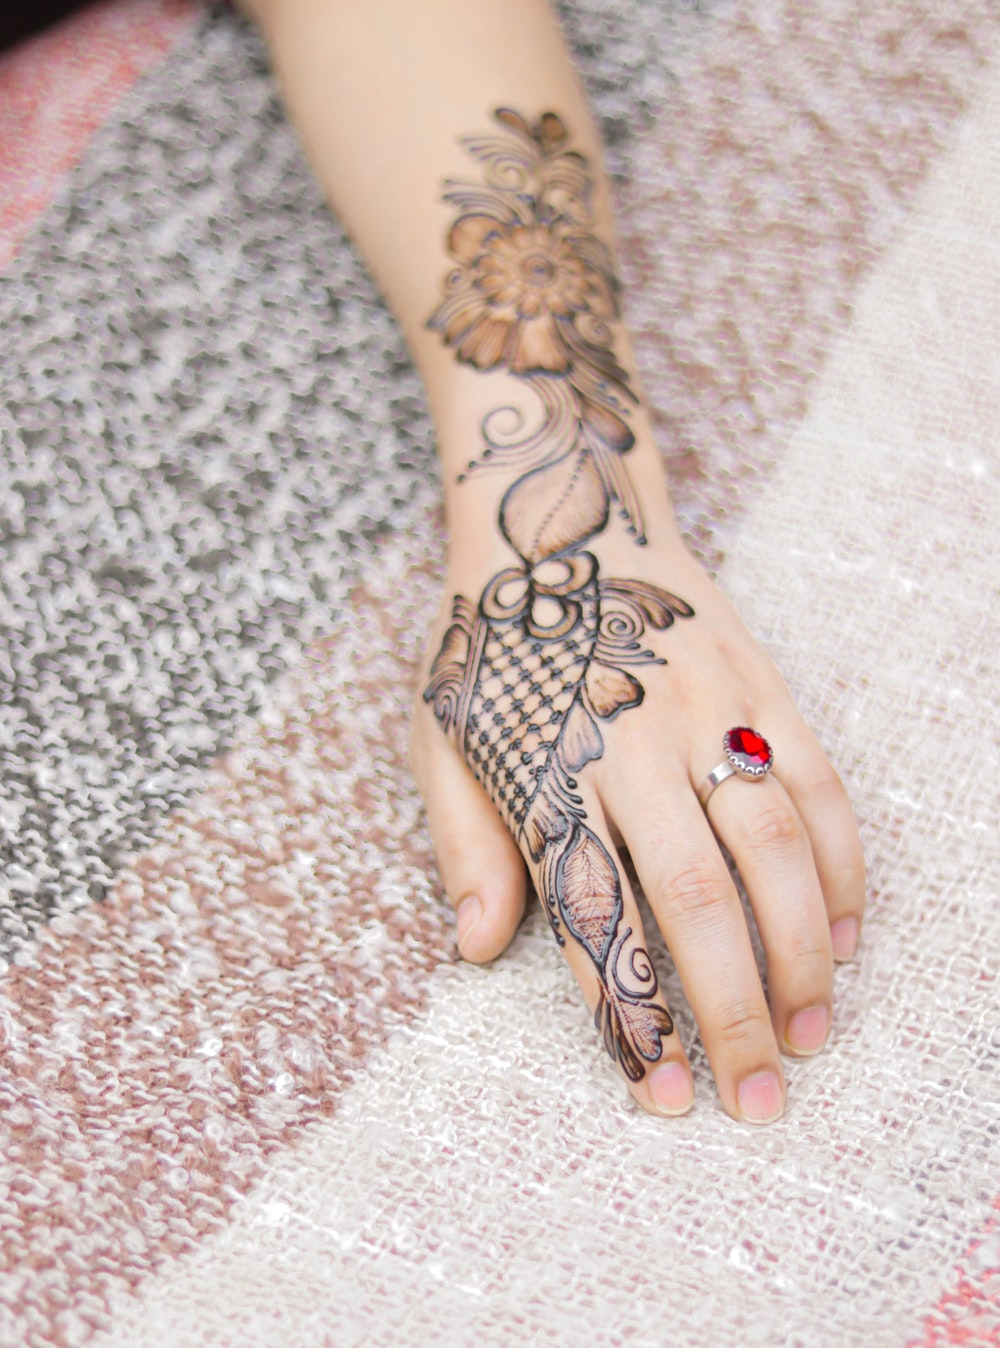 person with black and red flower tattoo on right hand